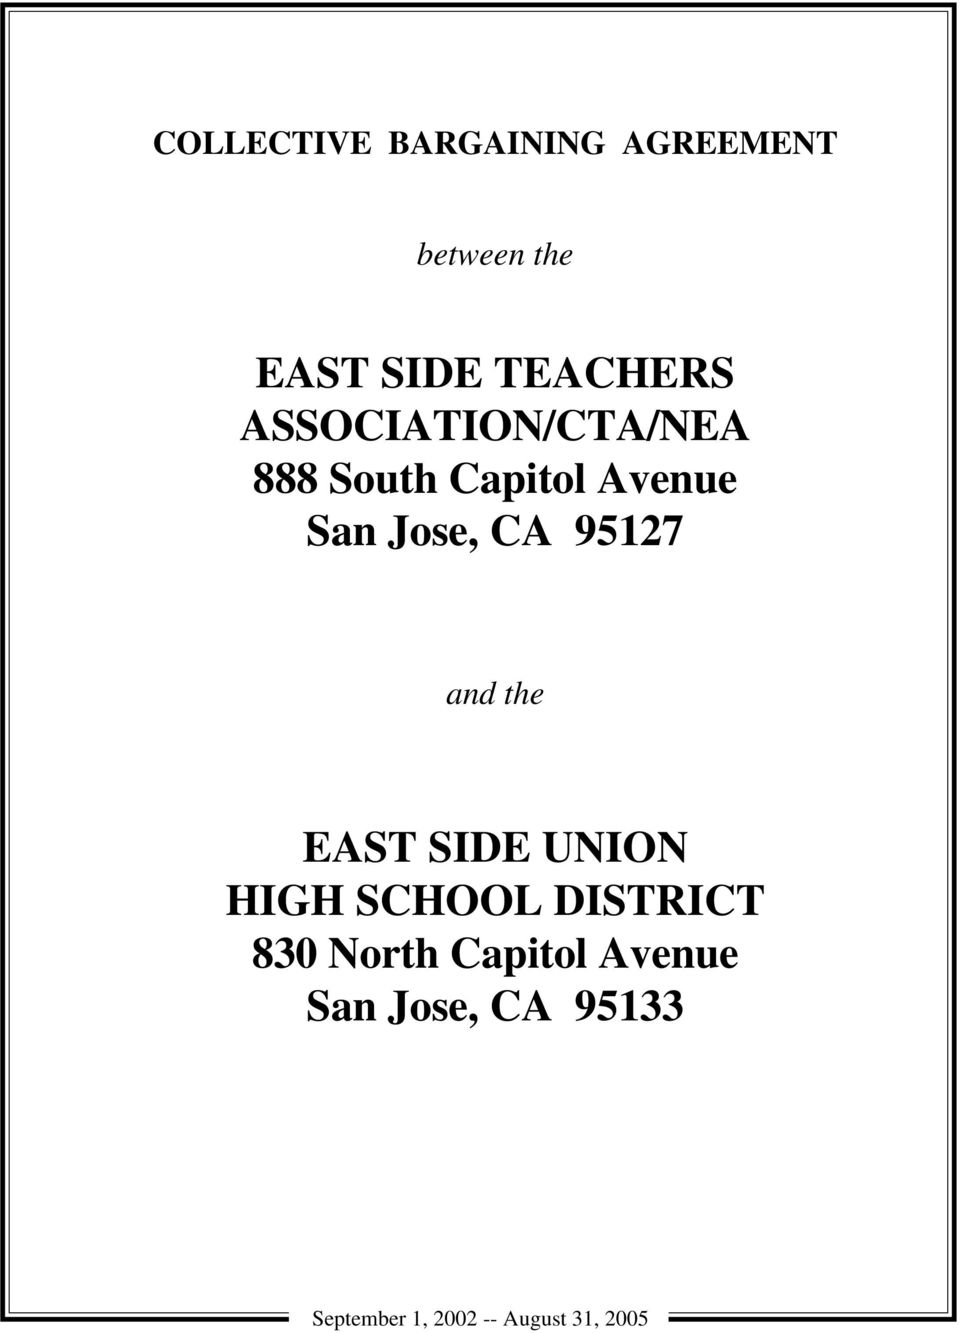 Jose, CA 1 and the EAST SIDE UNION HIGH SCHOOL DISTRICT 0